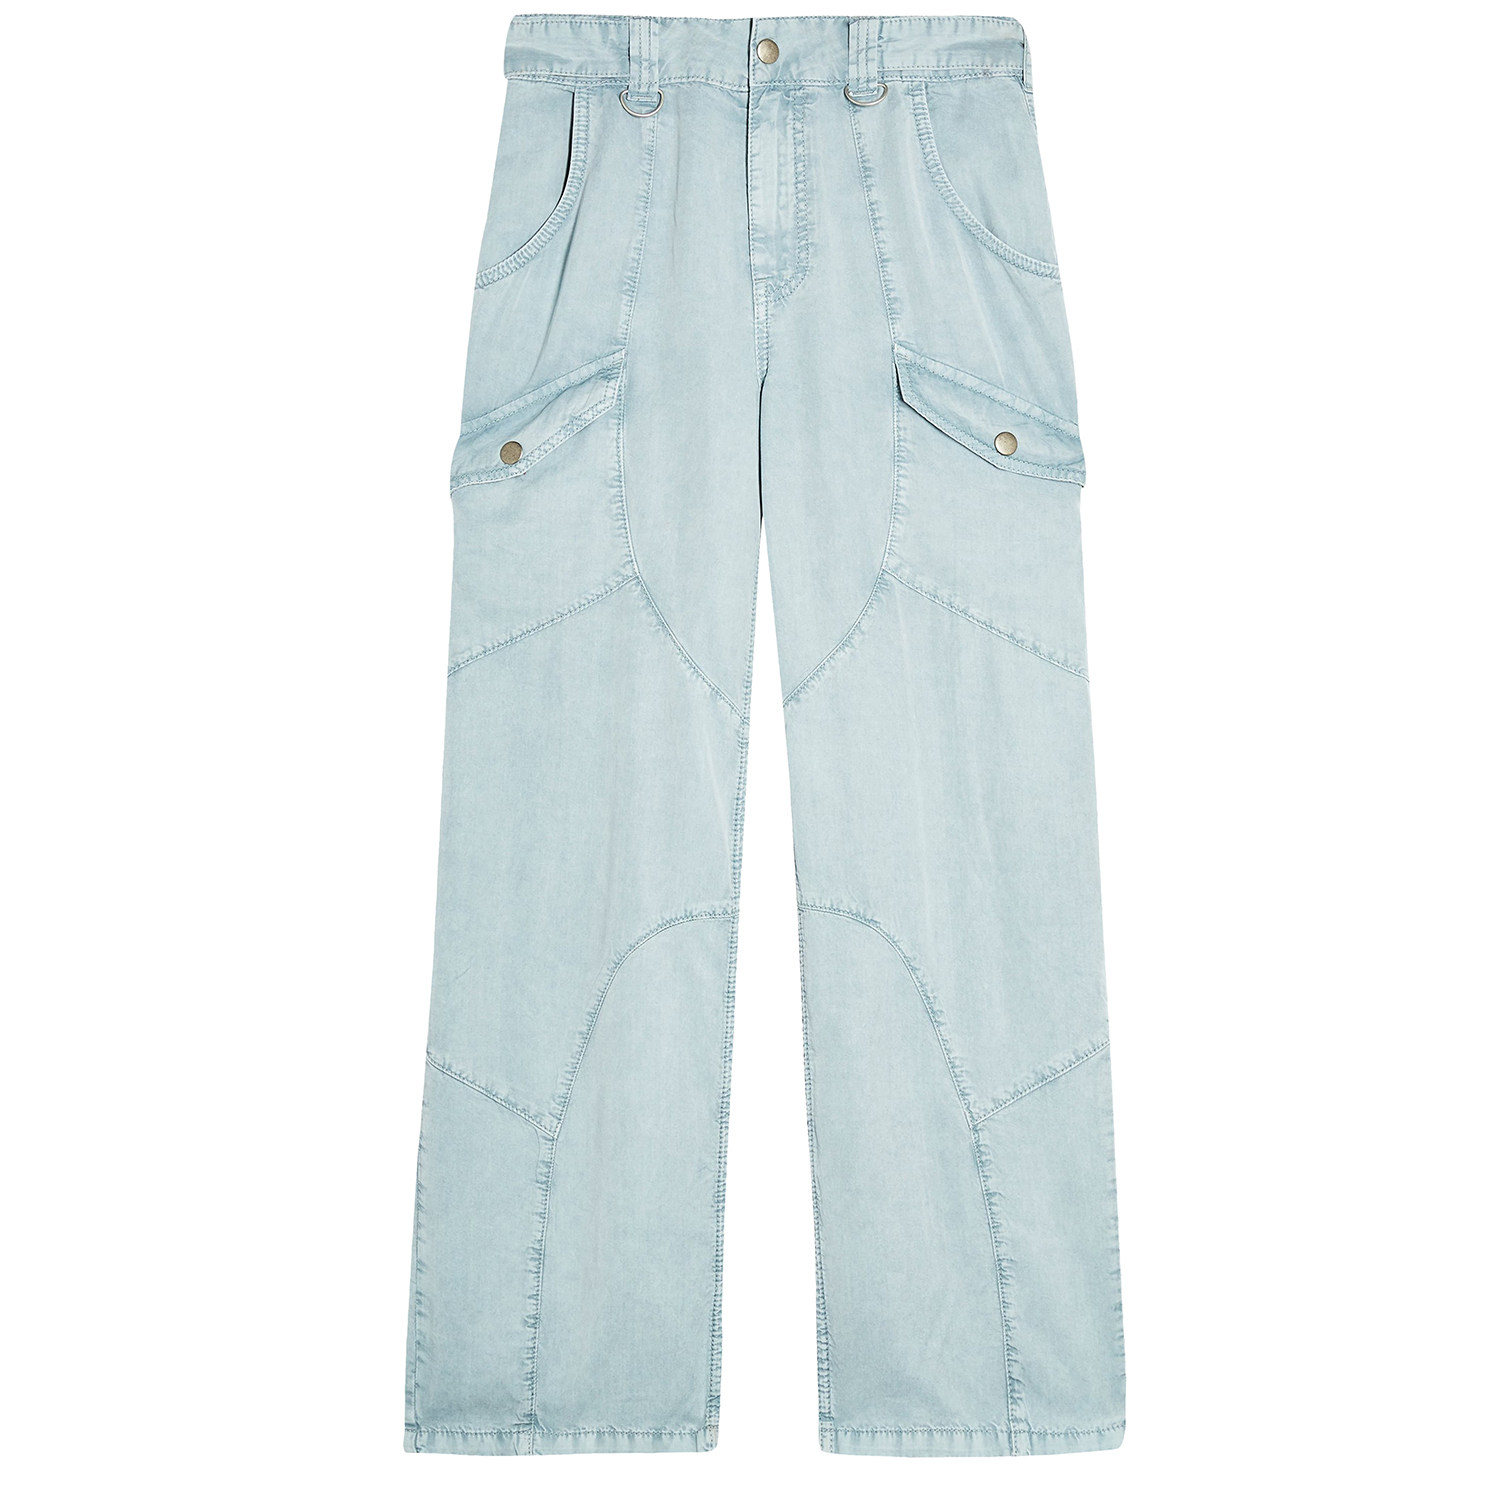 Topshop Love Fool Cargo Pants